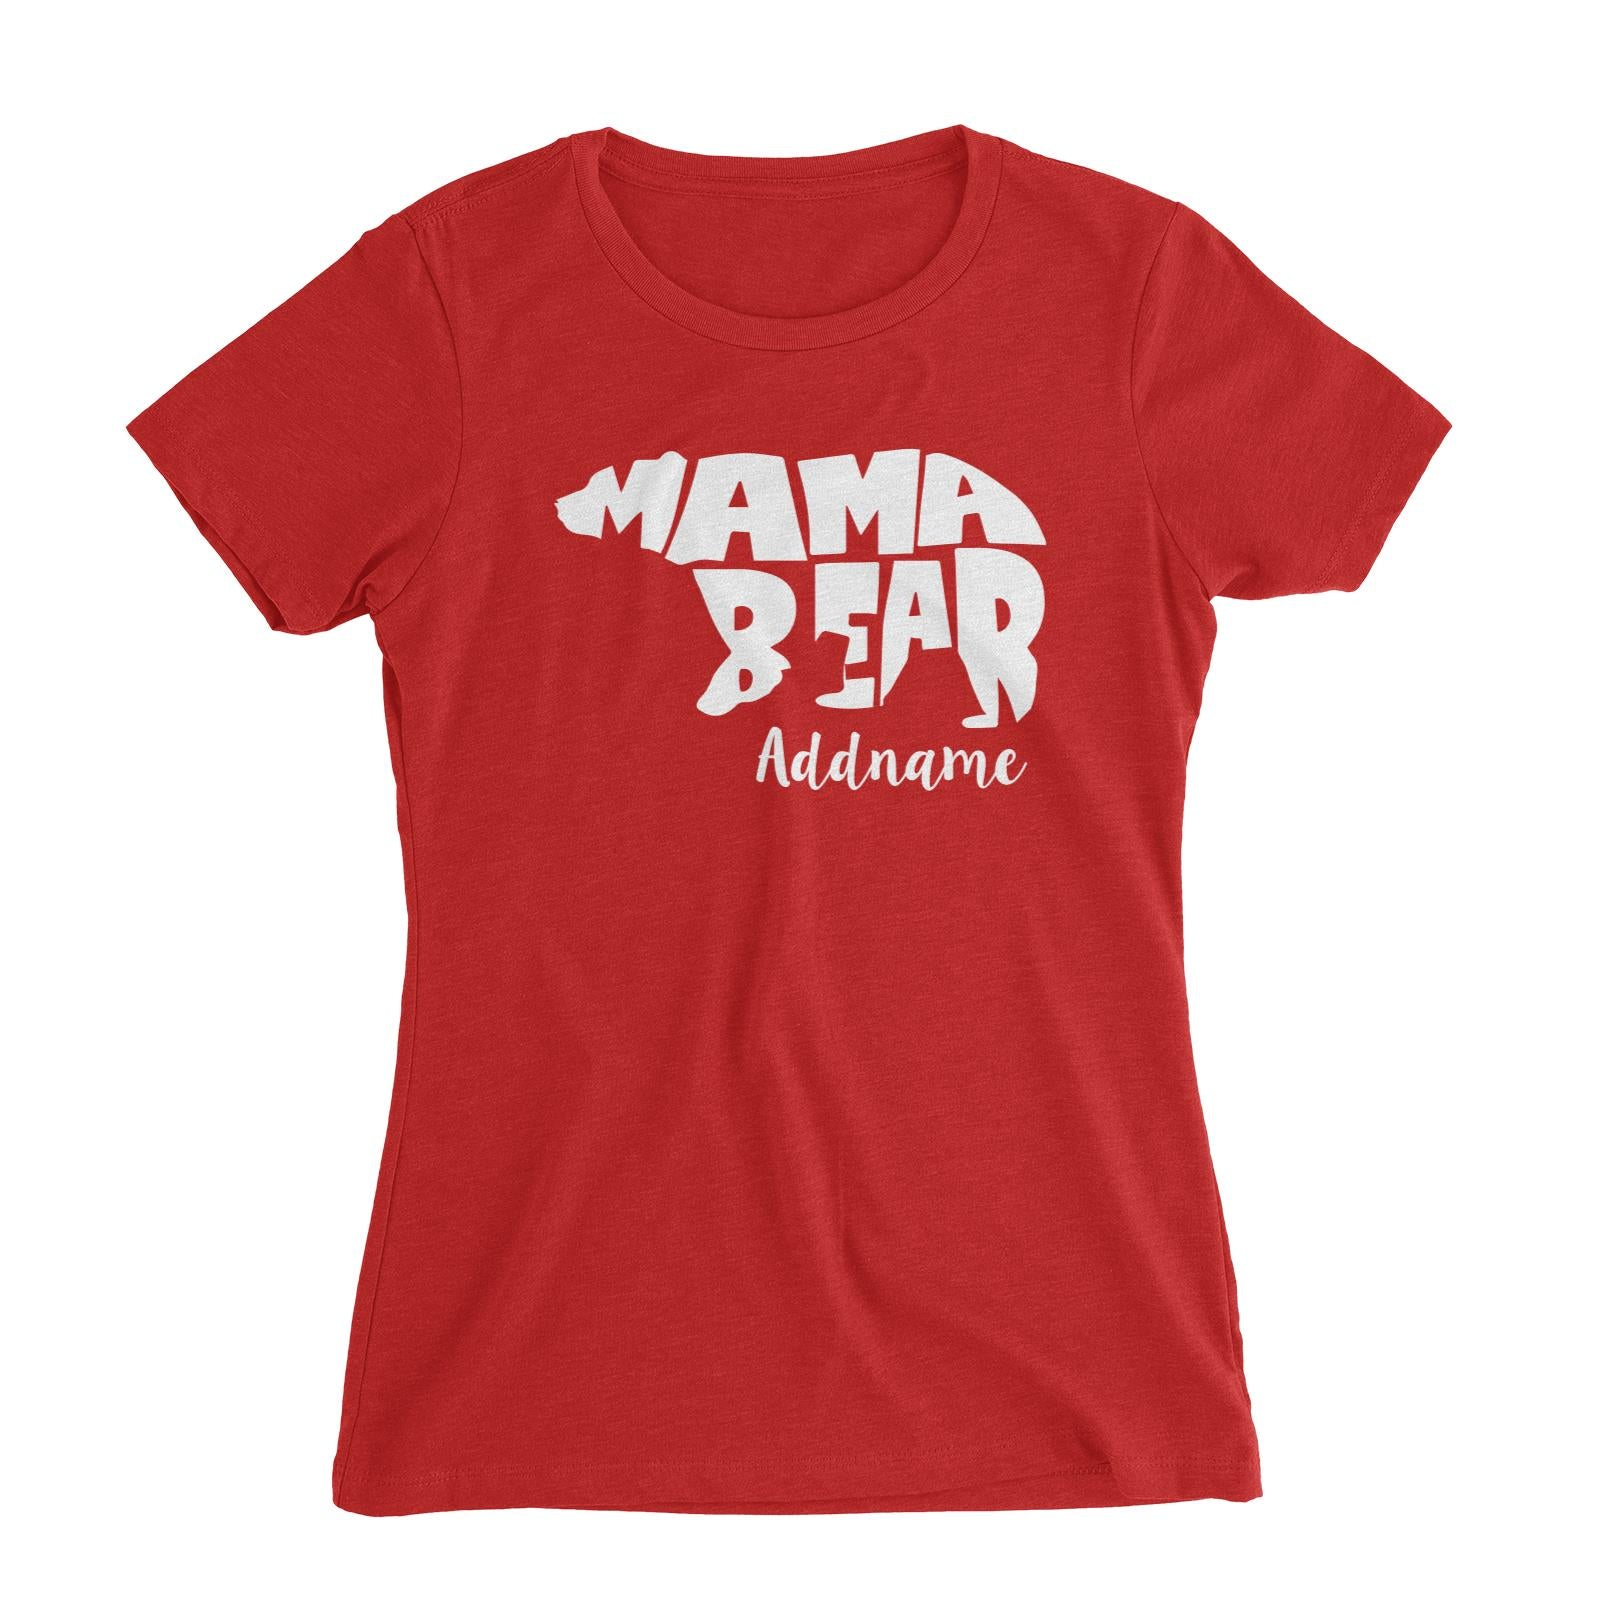 Mama Bear Silhoutte Addname Women's Slim Fit T-Shirt  Matching Family Personalizable Designs